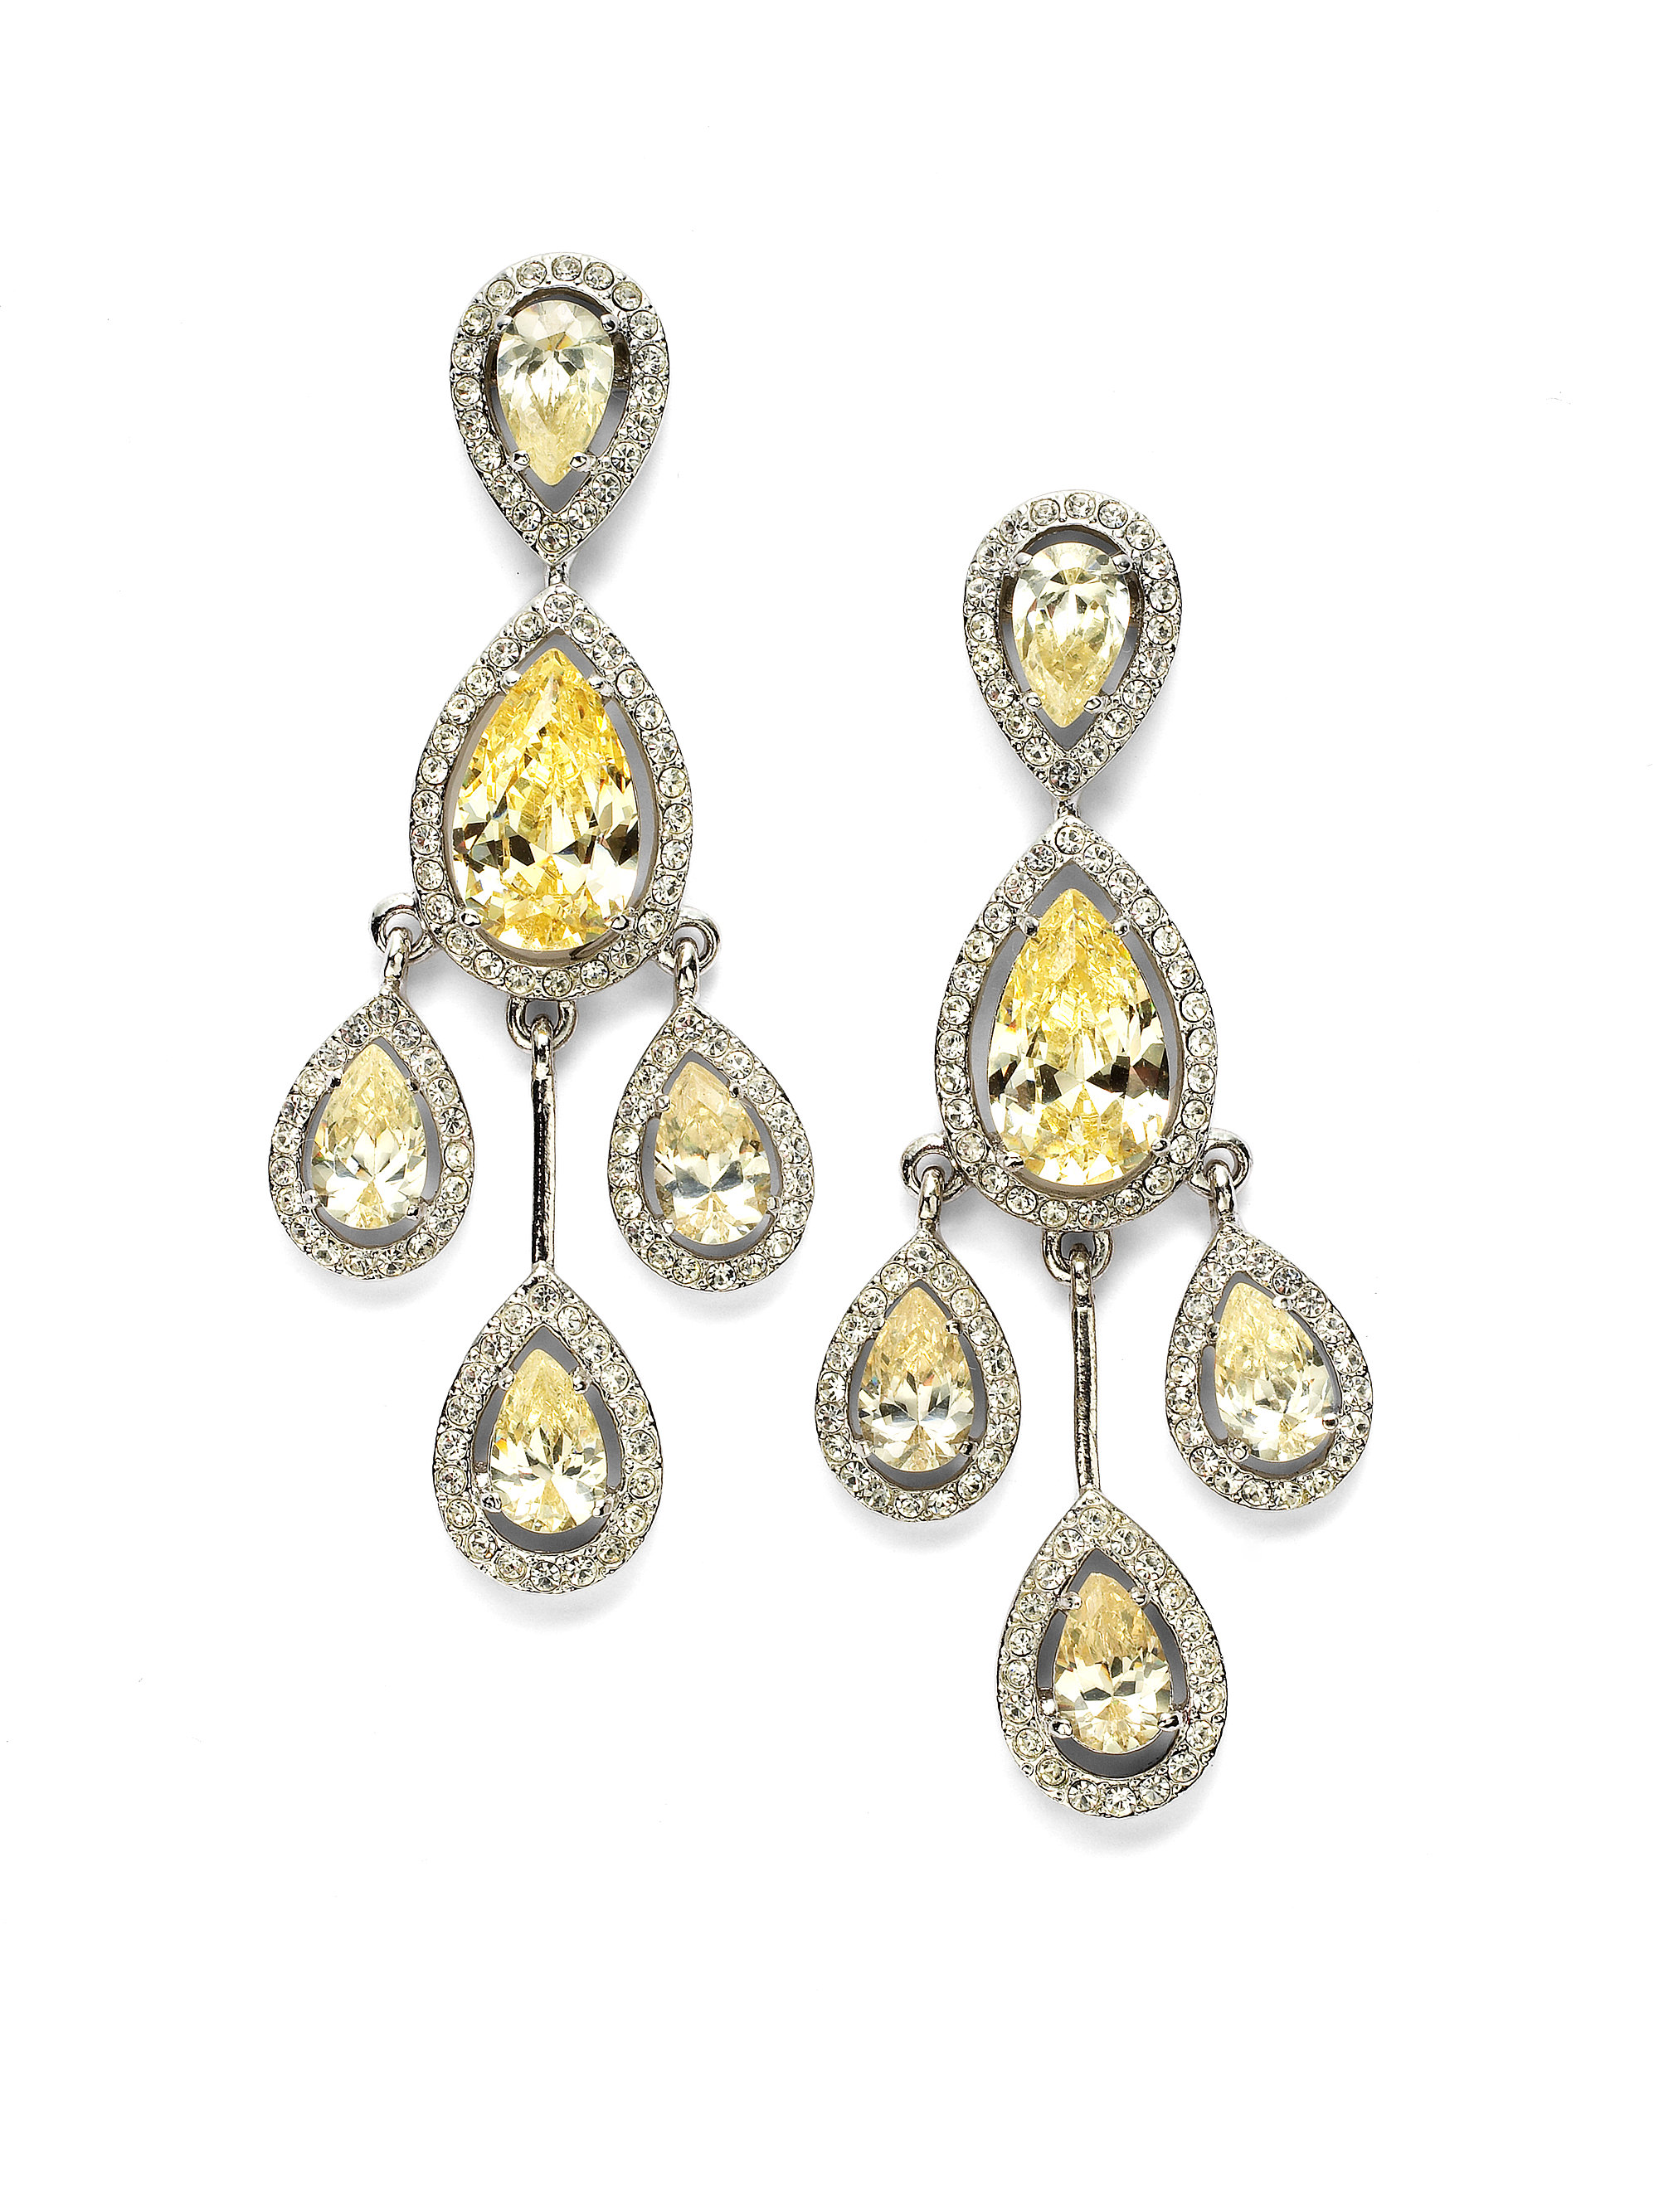 zirconi gold d con pear plated white silver drop en argento earrings orecchini in rose zircons arabesque stones shaped rhodium negozio bianco with or pietre luxanty